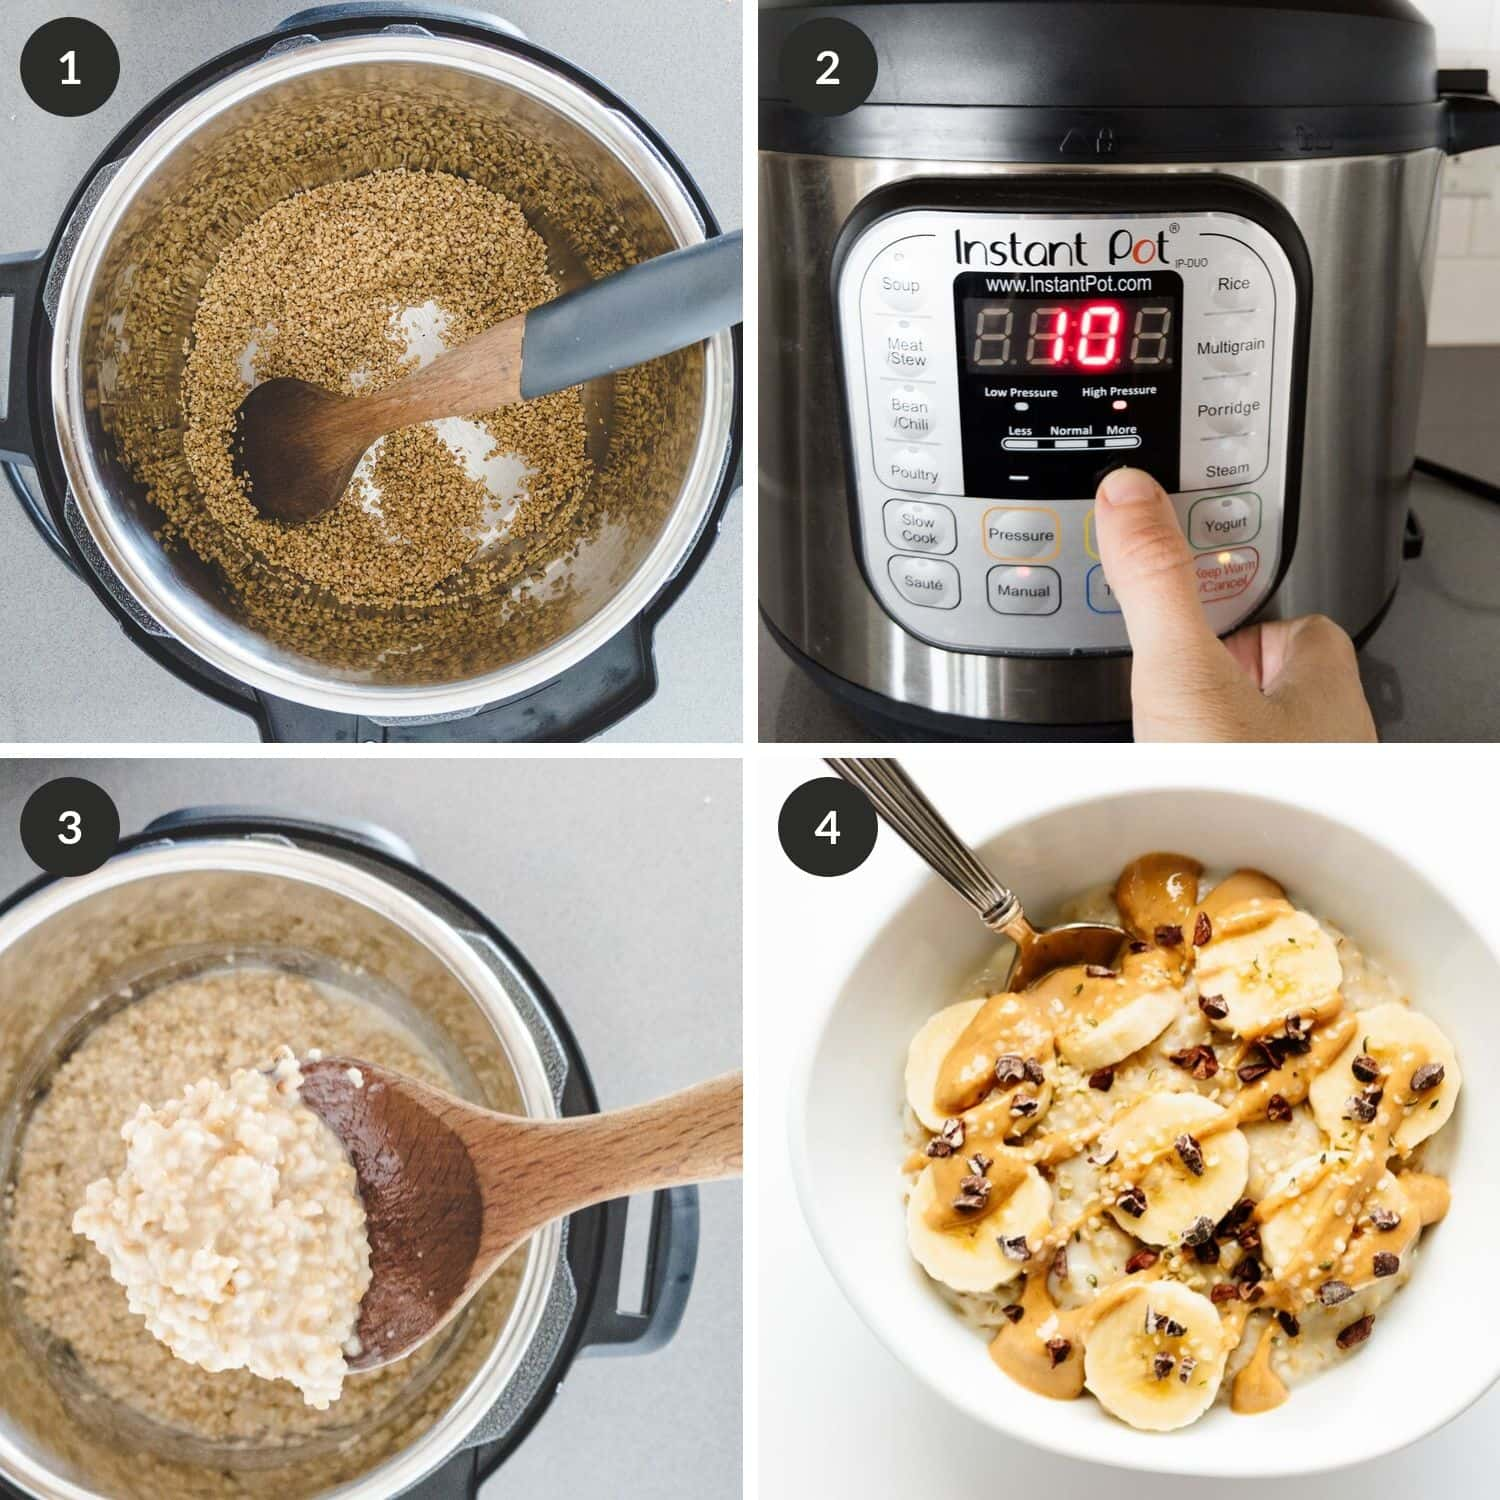 Process shots of cooking steel cuts oats with the Instant Pot method.